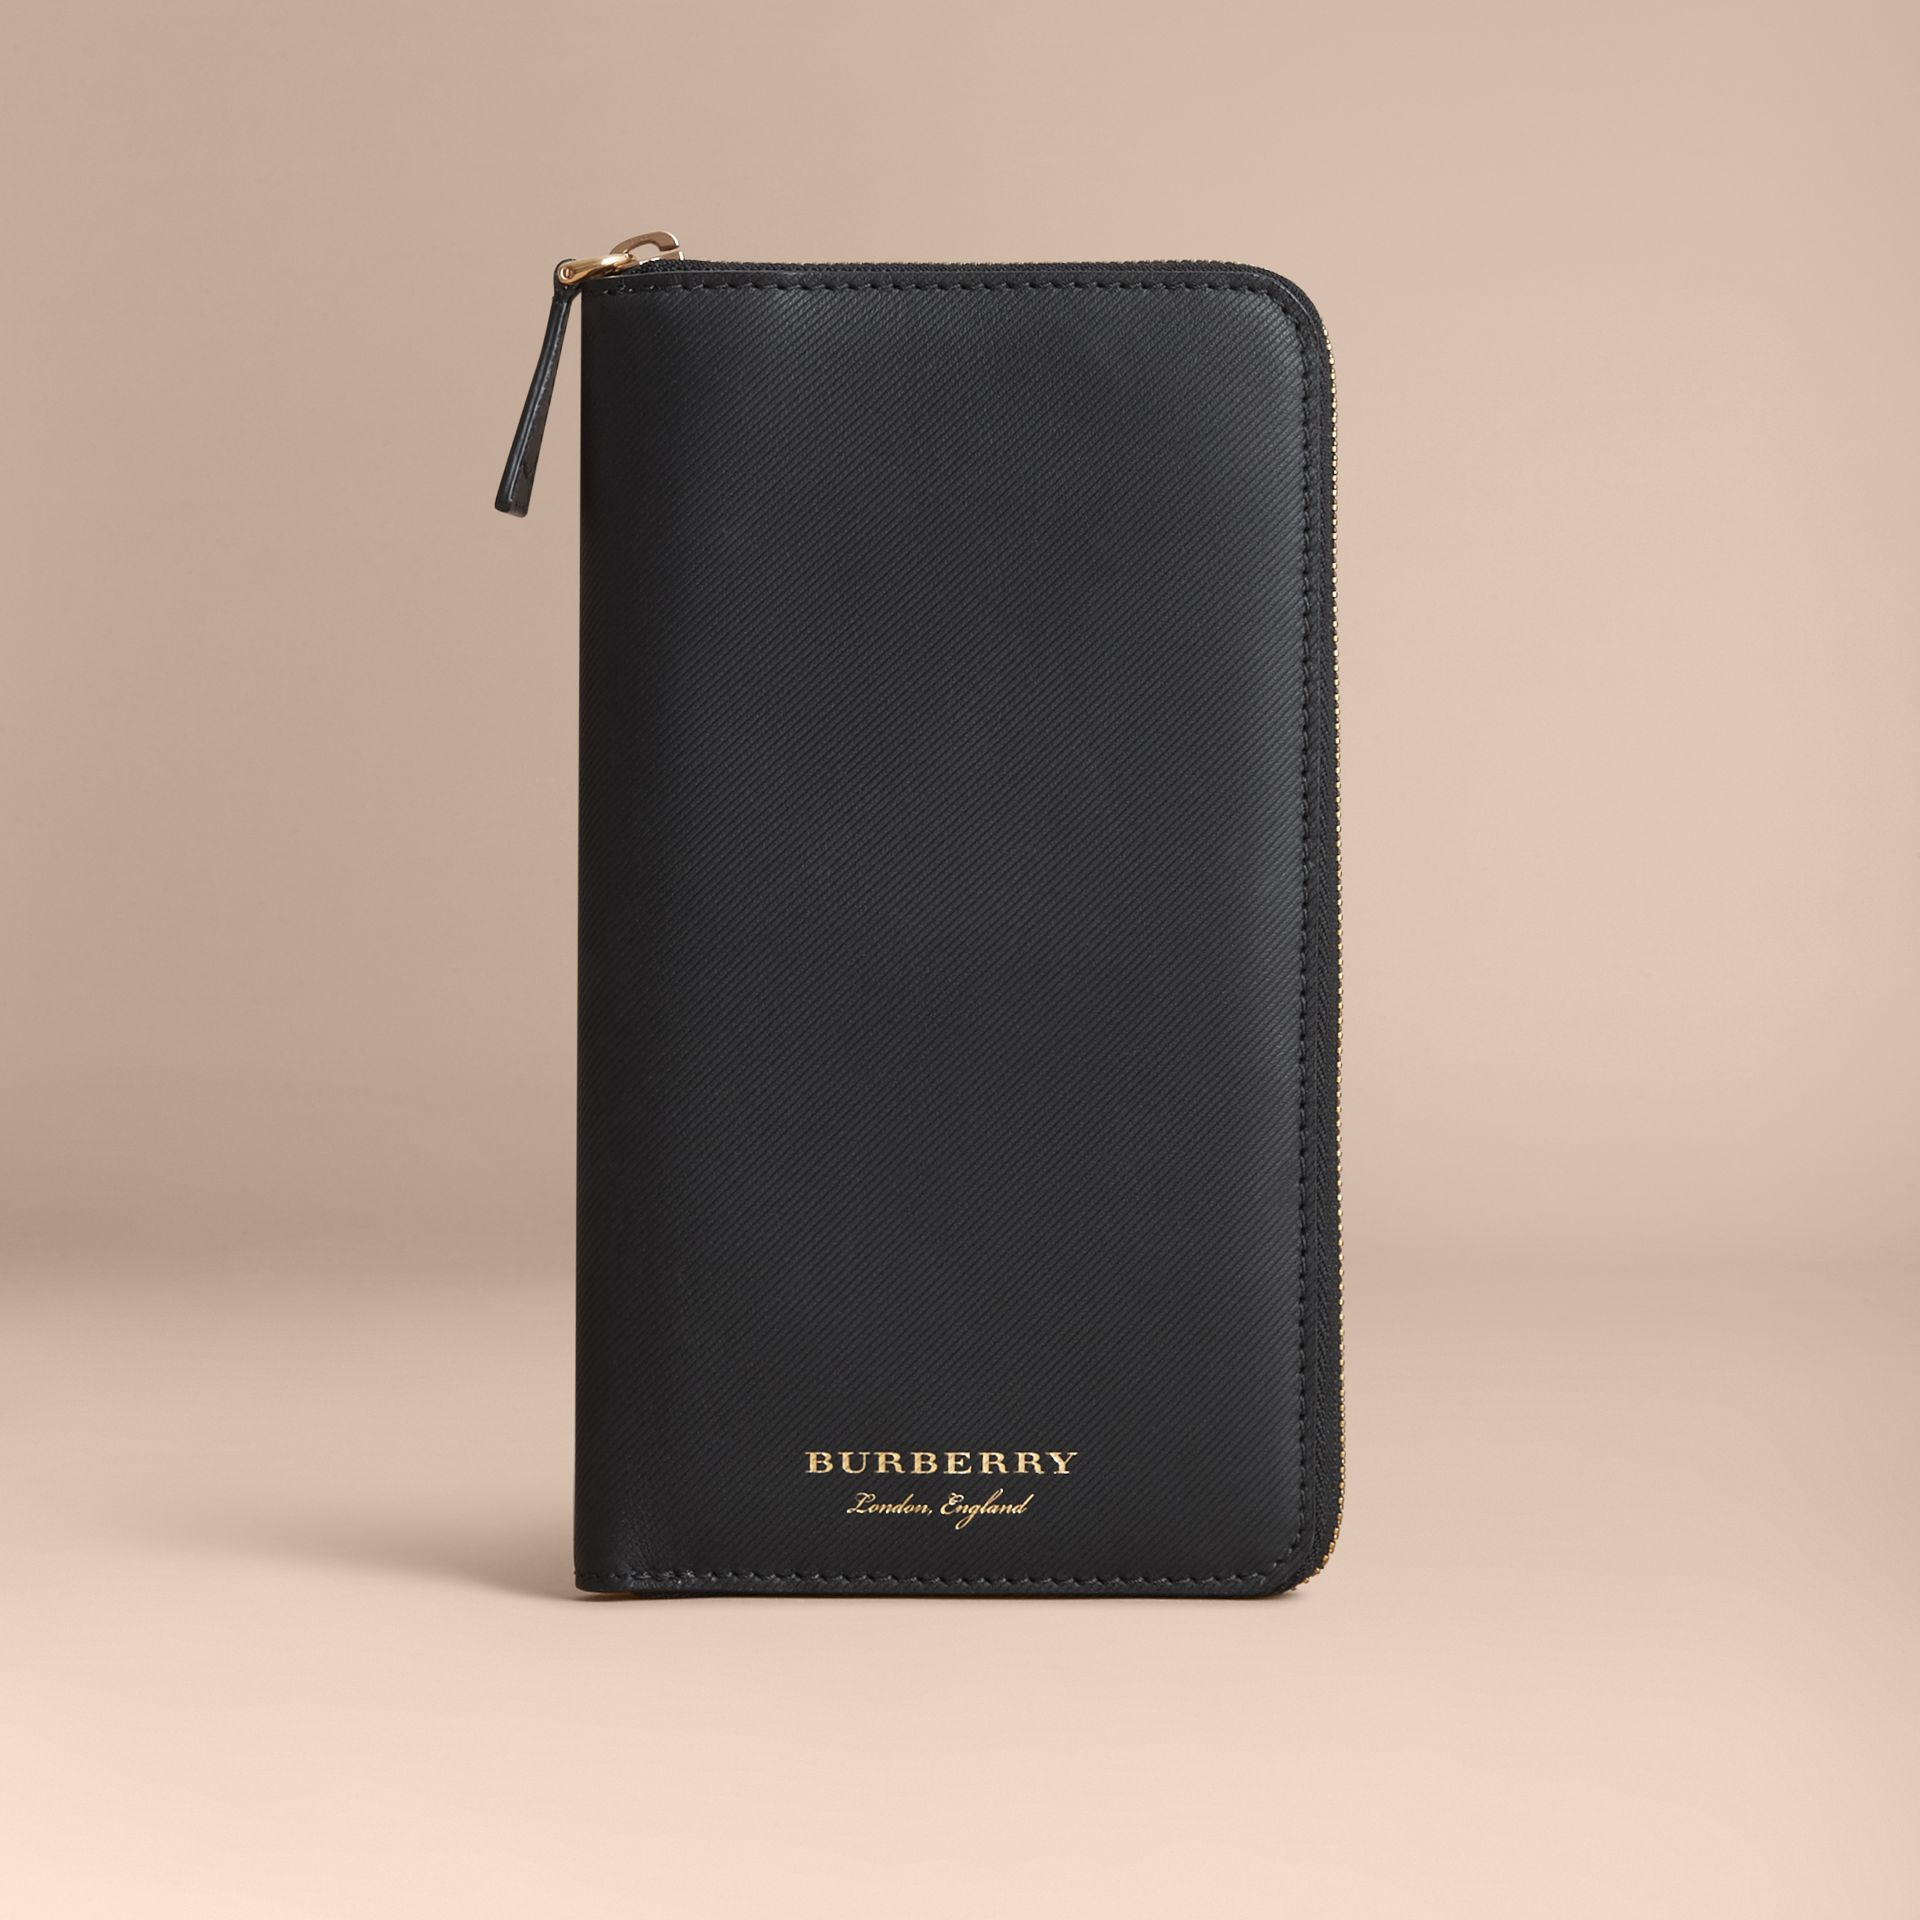 Trench Leather Ziparound Wallet in Black - Men | Burberry - gallery image 6